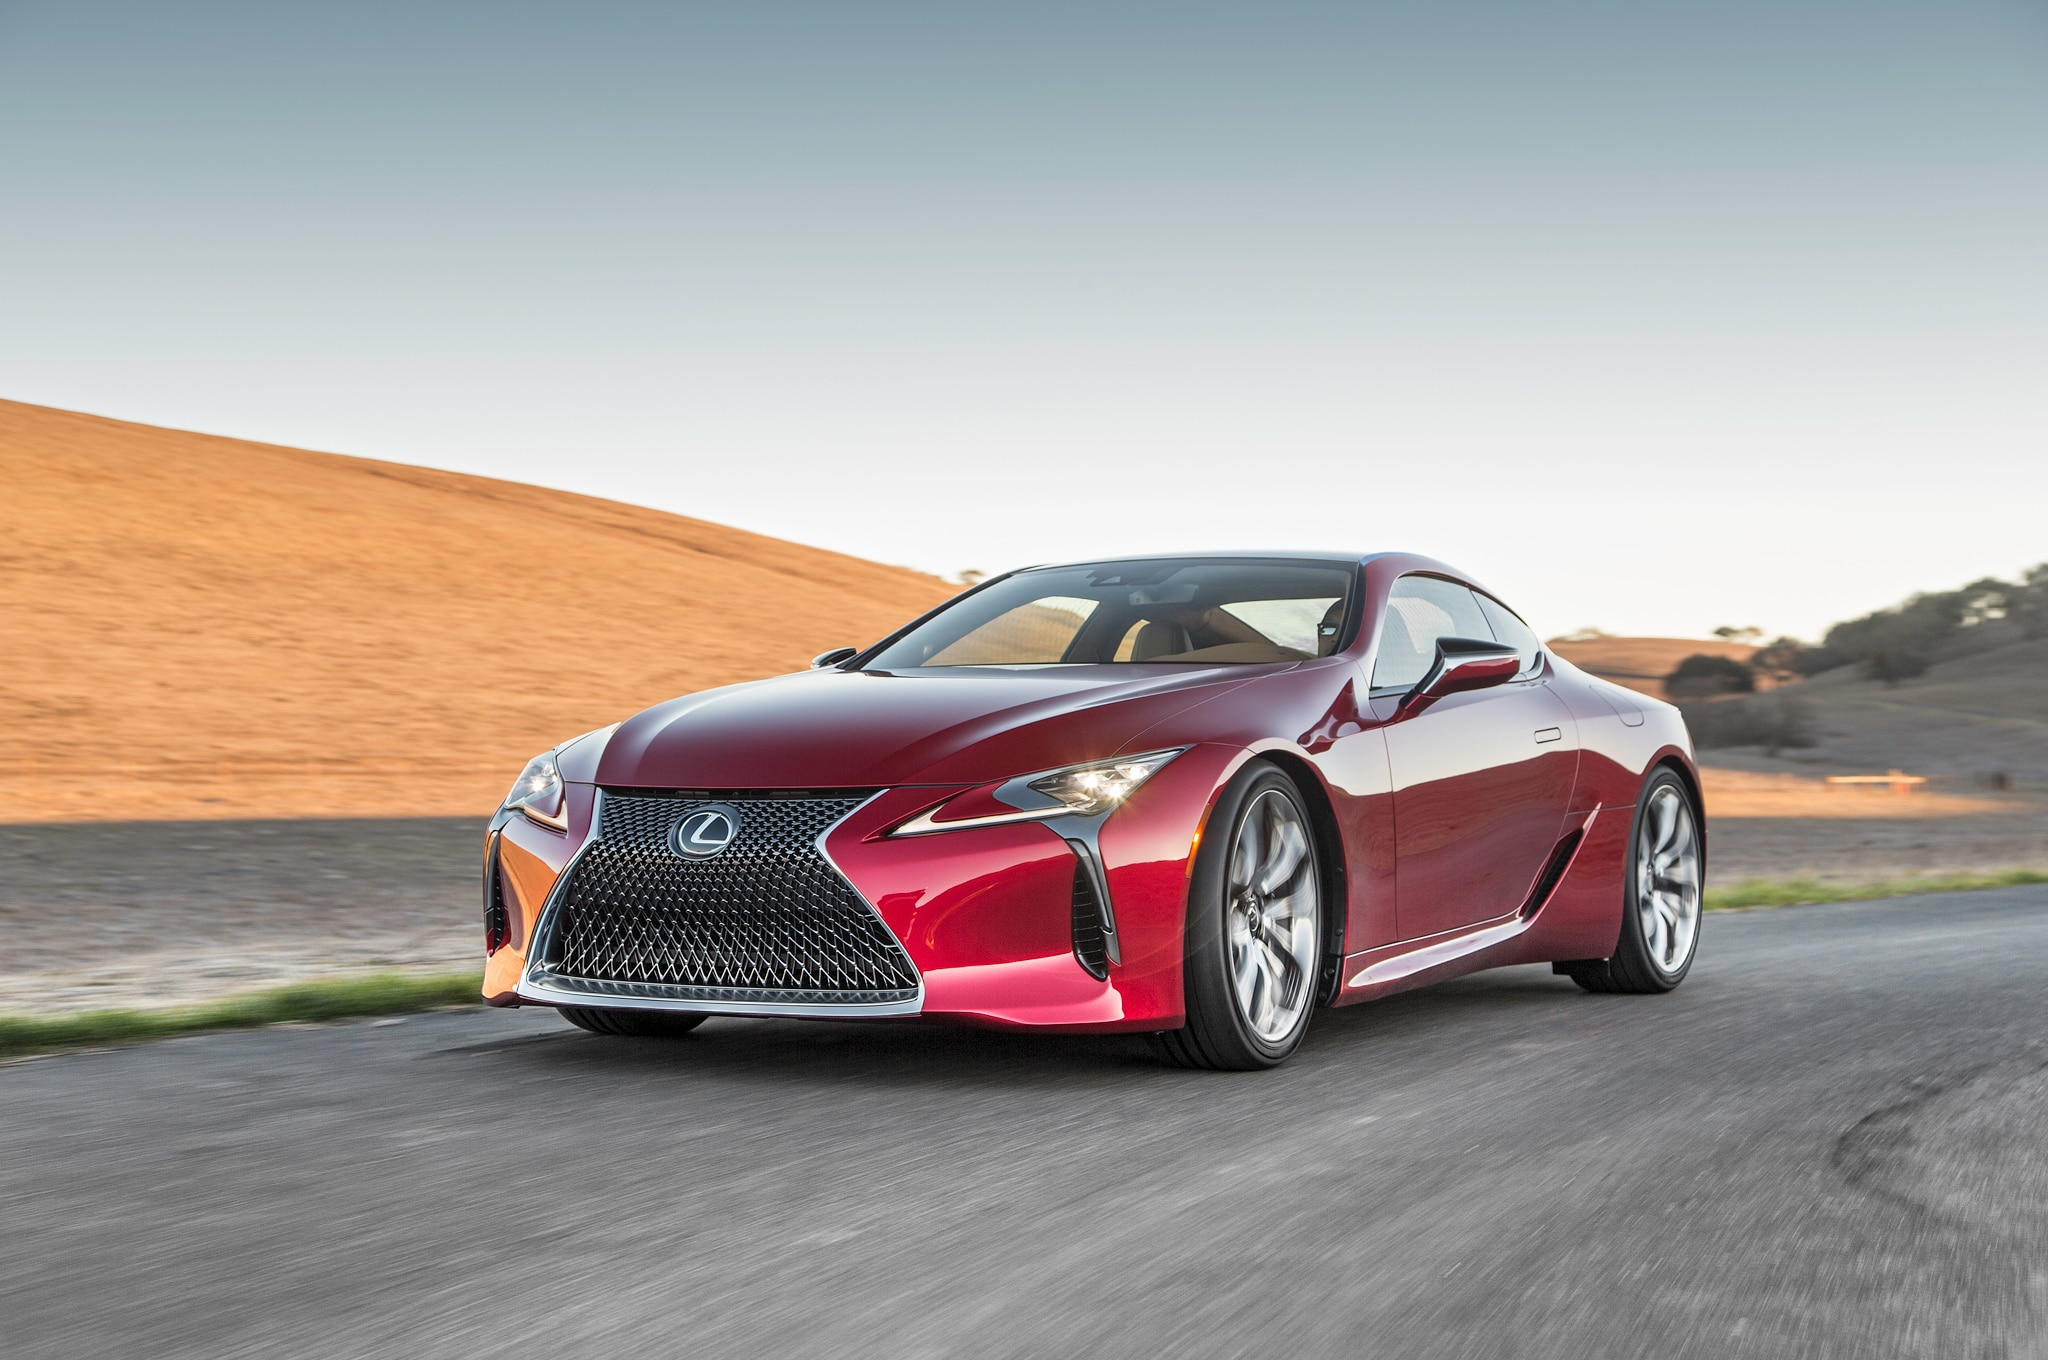 2018 lexus lc 500 coming next may armed with 471 horsepower automobile magazine. Black Bedroom Furniture Sets. Home Design Ideas